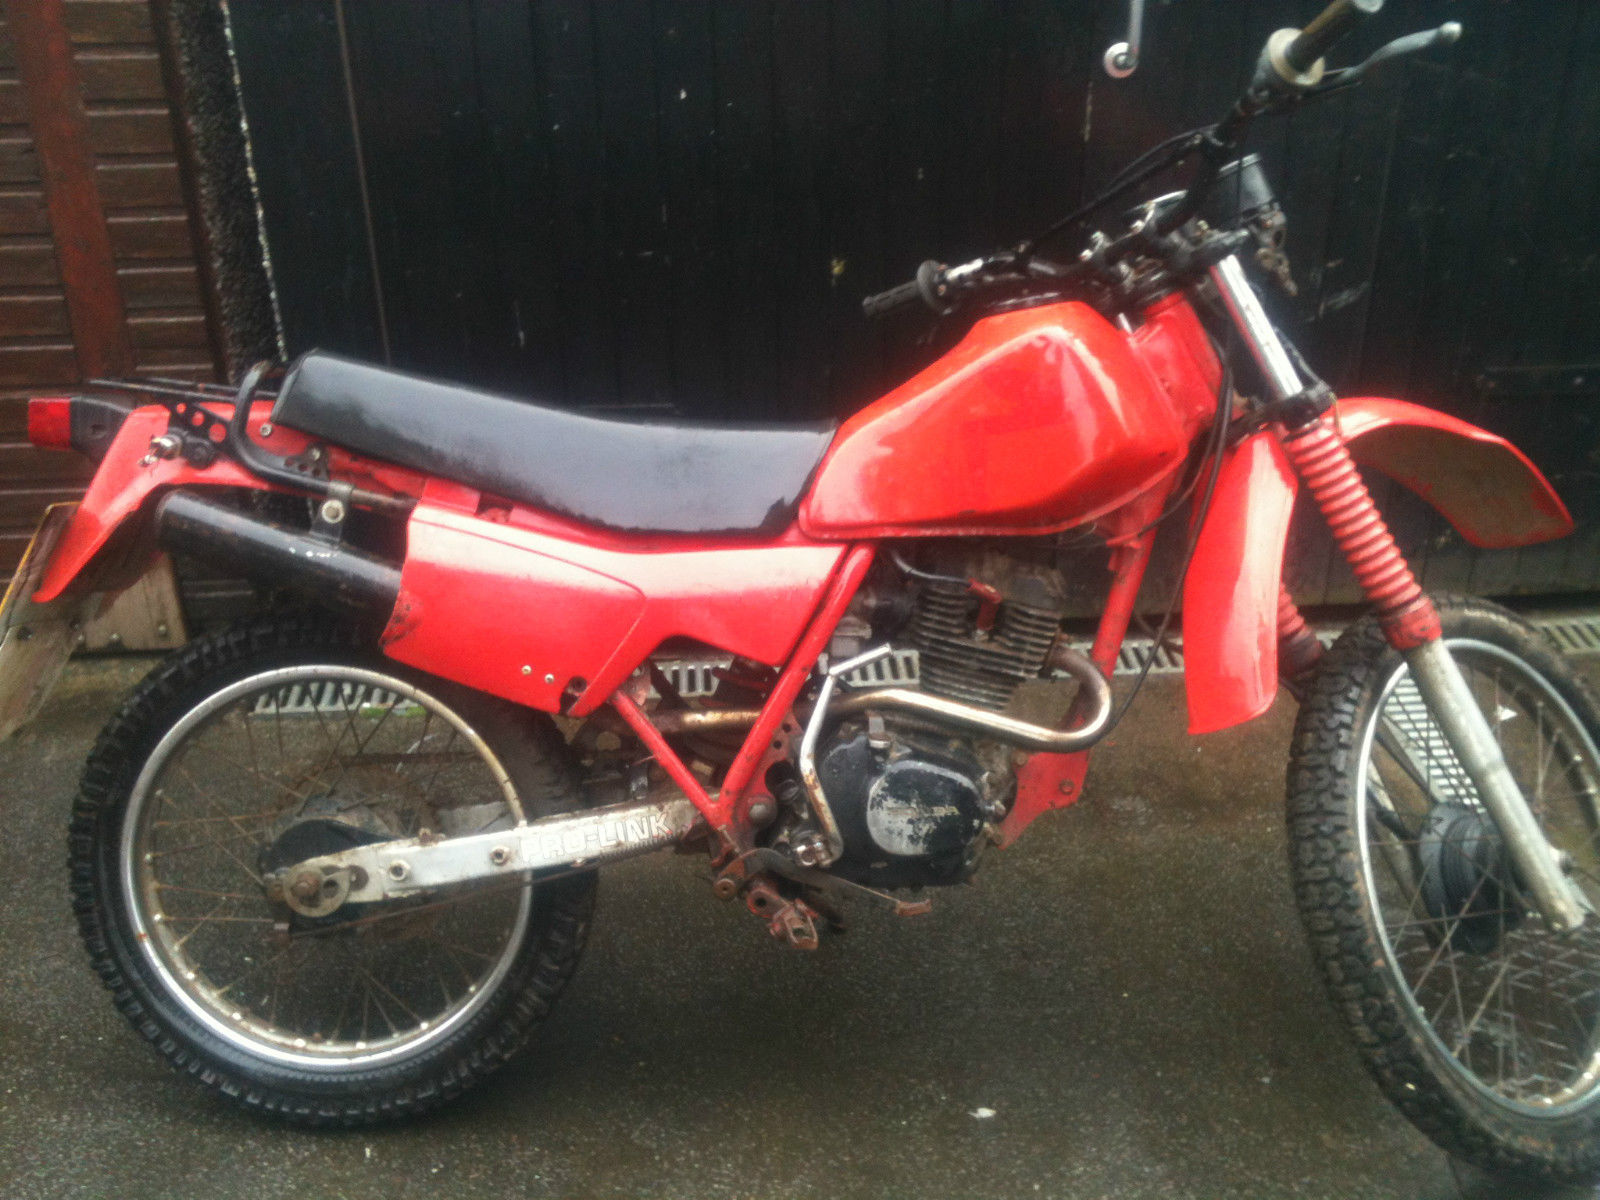 Honda Xl125rc 1983 Complete With V5c Restoration Project Or Parts Donor Shadow Motorcycle